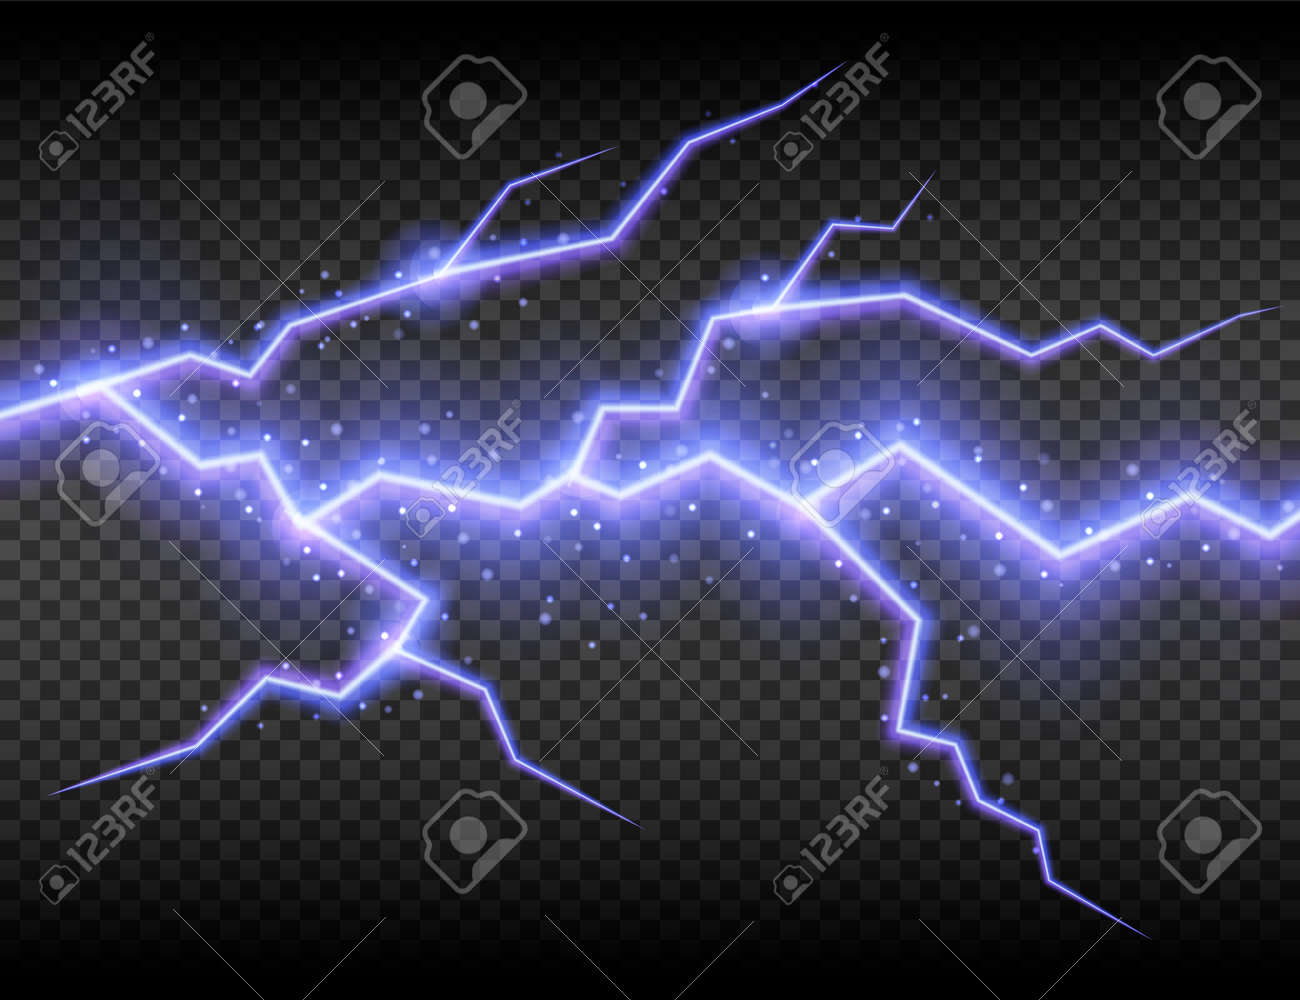 Realistic electric lightning, abstract thunderstorm. Lightning shock isolated on transparent background. Vector illustration. Eps 10. - 164800742